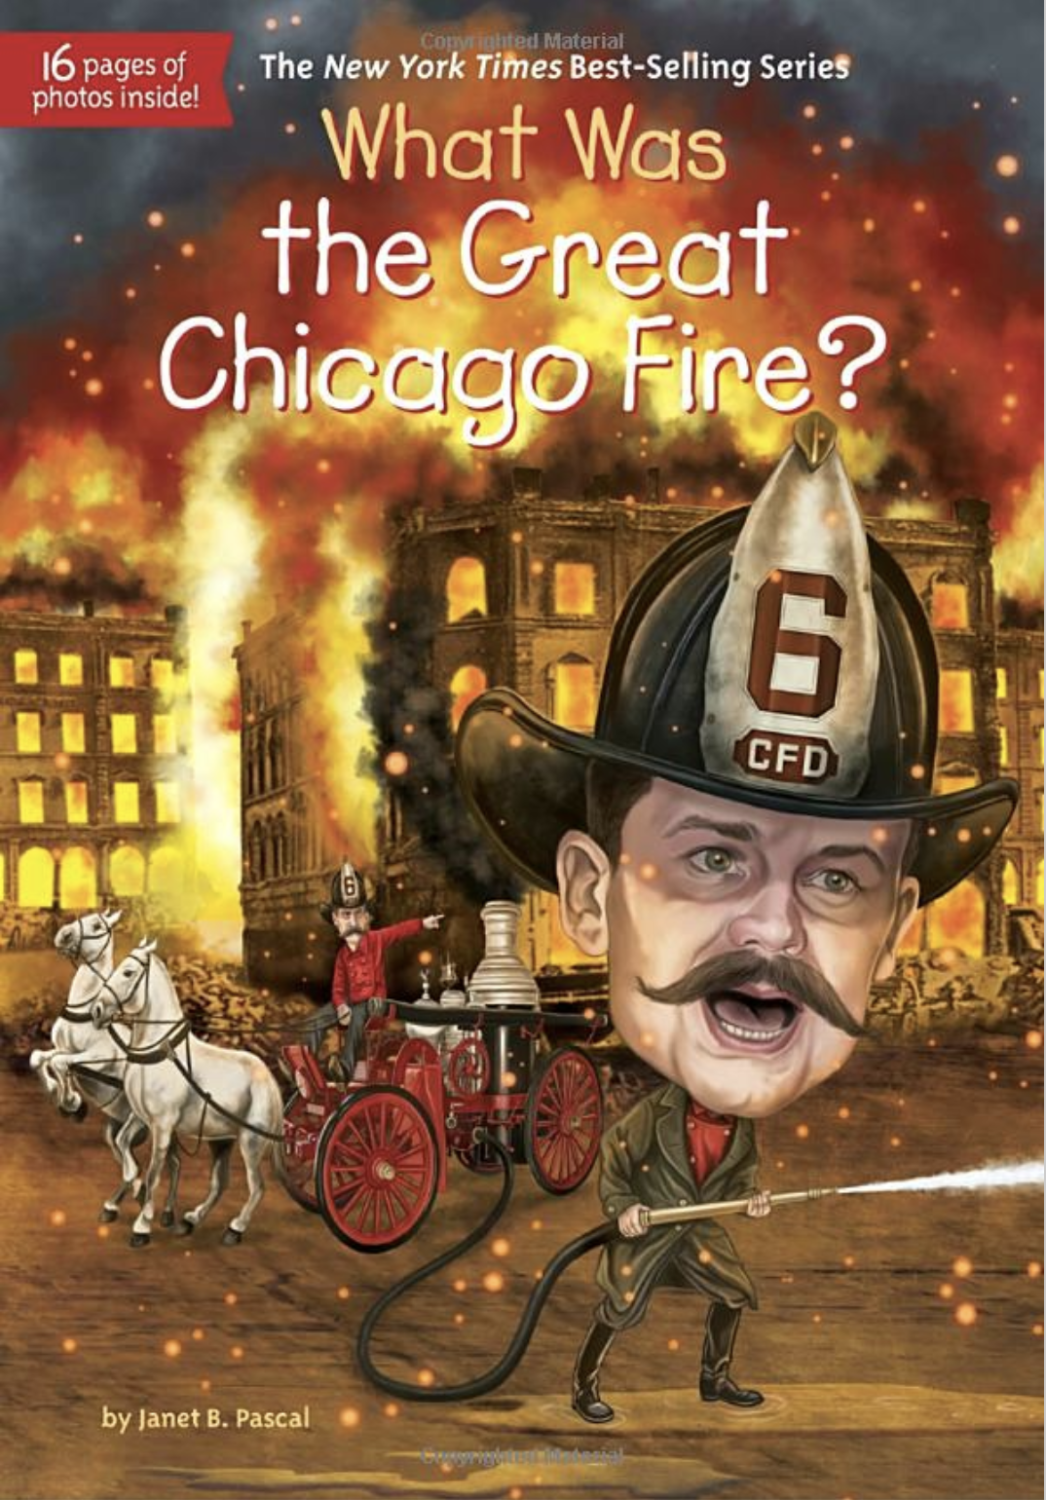 What Was Great Chicago Fire?